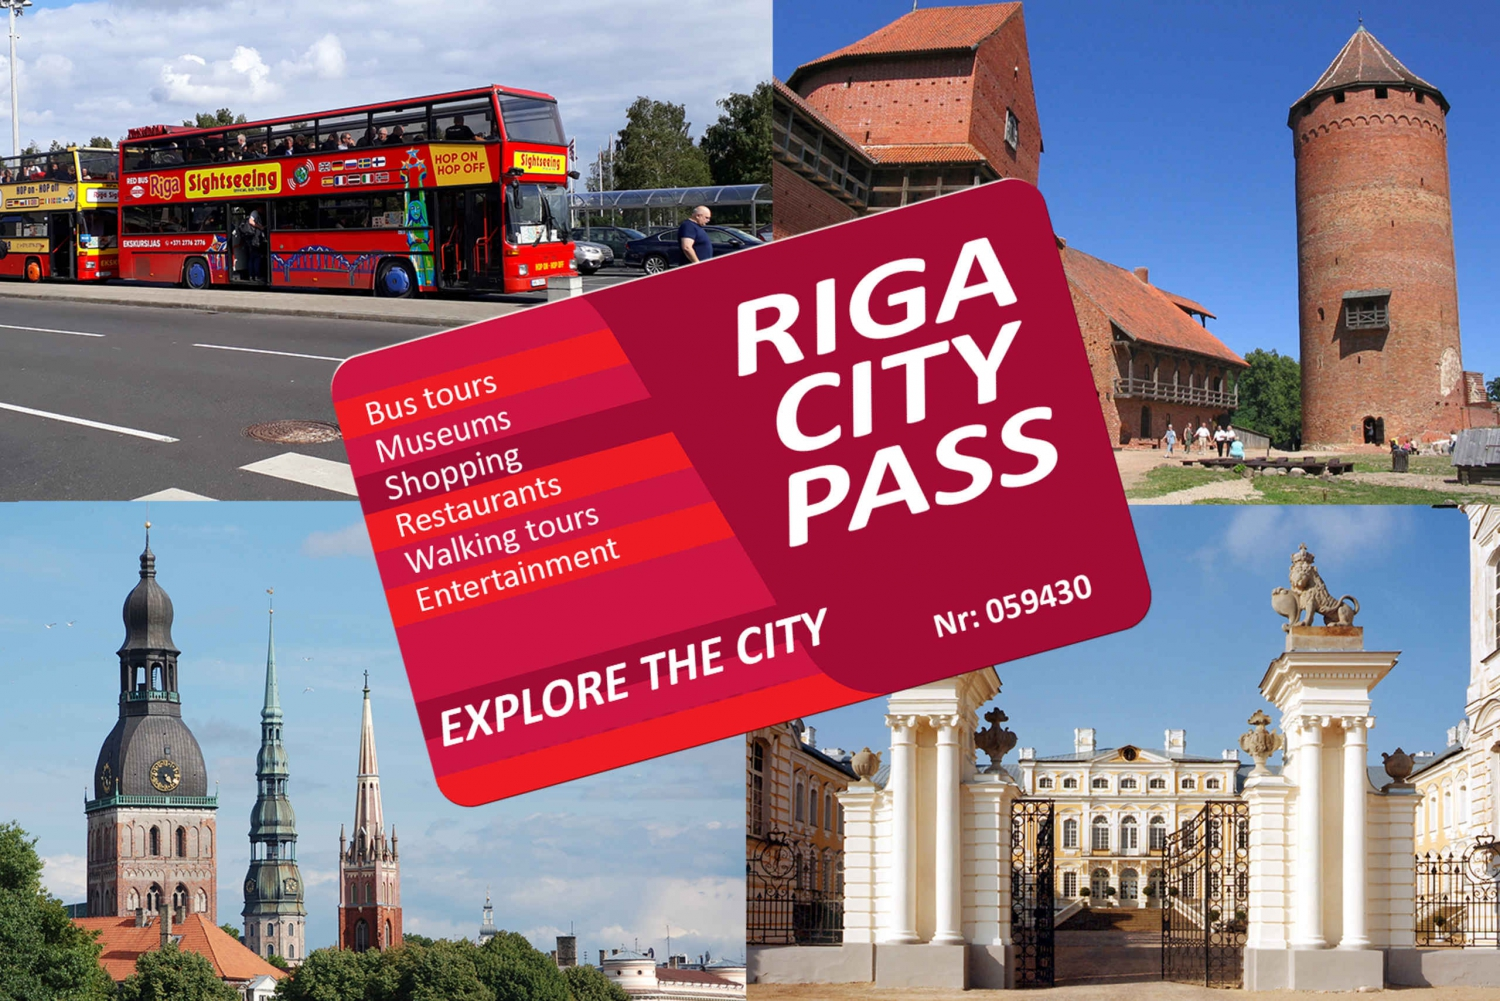 Riga: Tours and Discounts City Pass without Time Limit